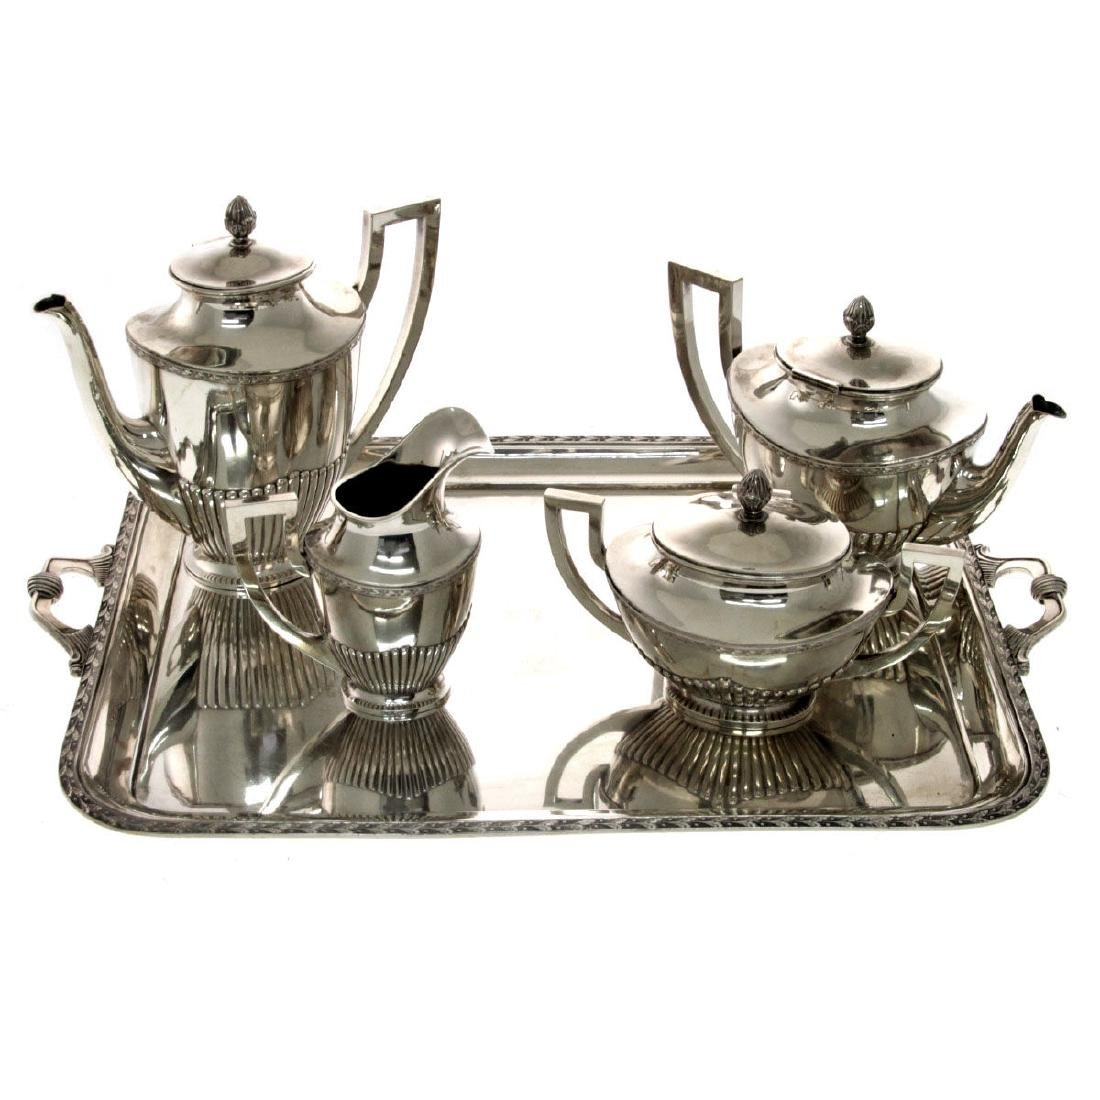 Russian Silver Tea and Coffee Set, 1908-1917.